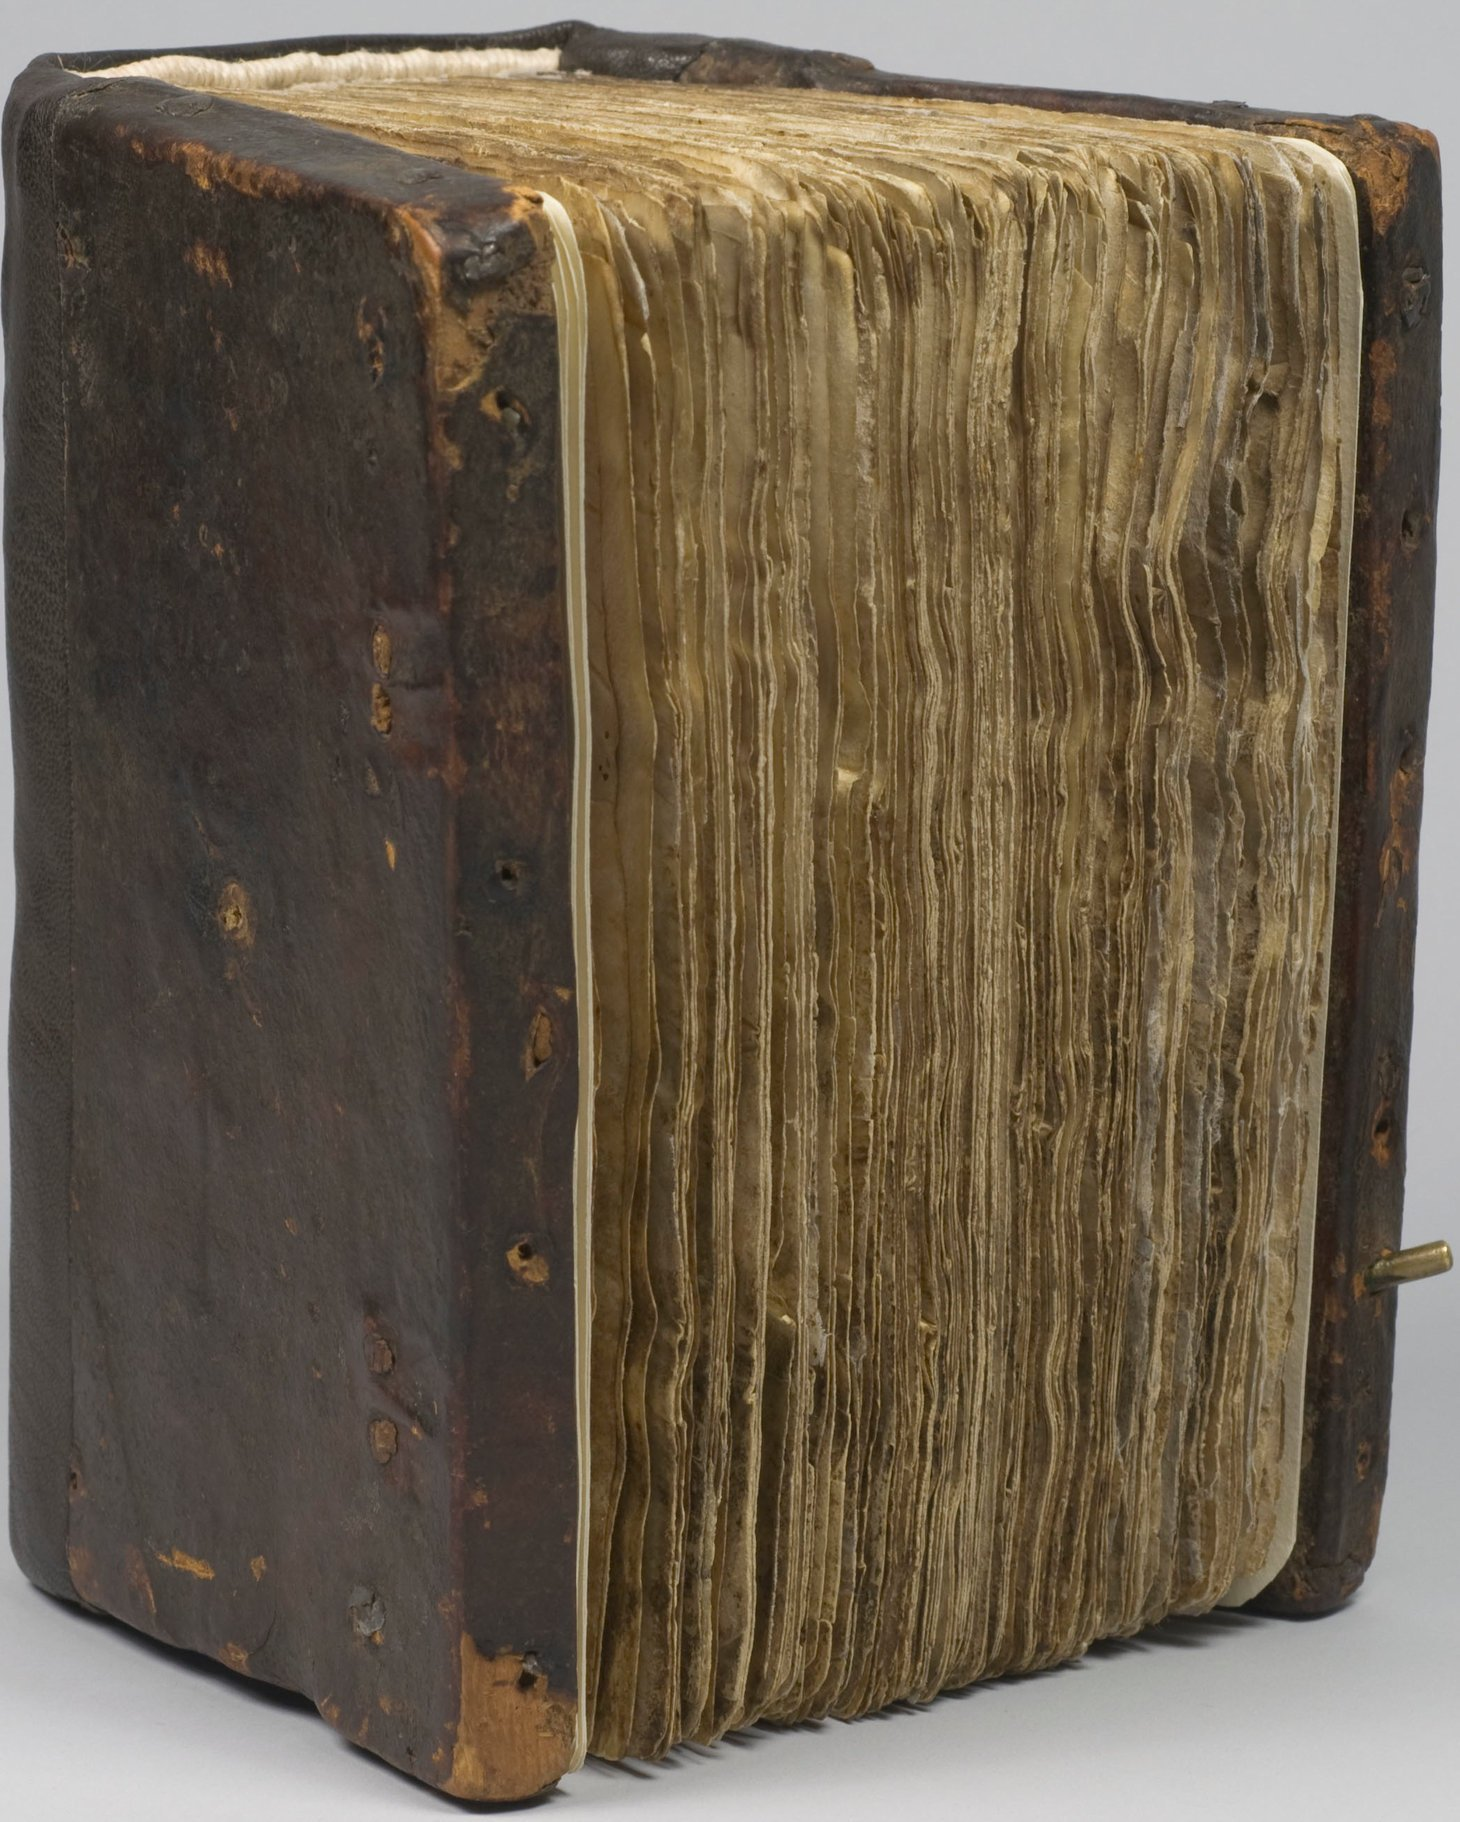 The bound Syriac Galen Palimpsest.CreditCourtesy of the Owner